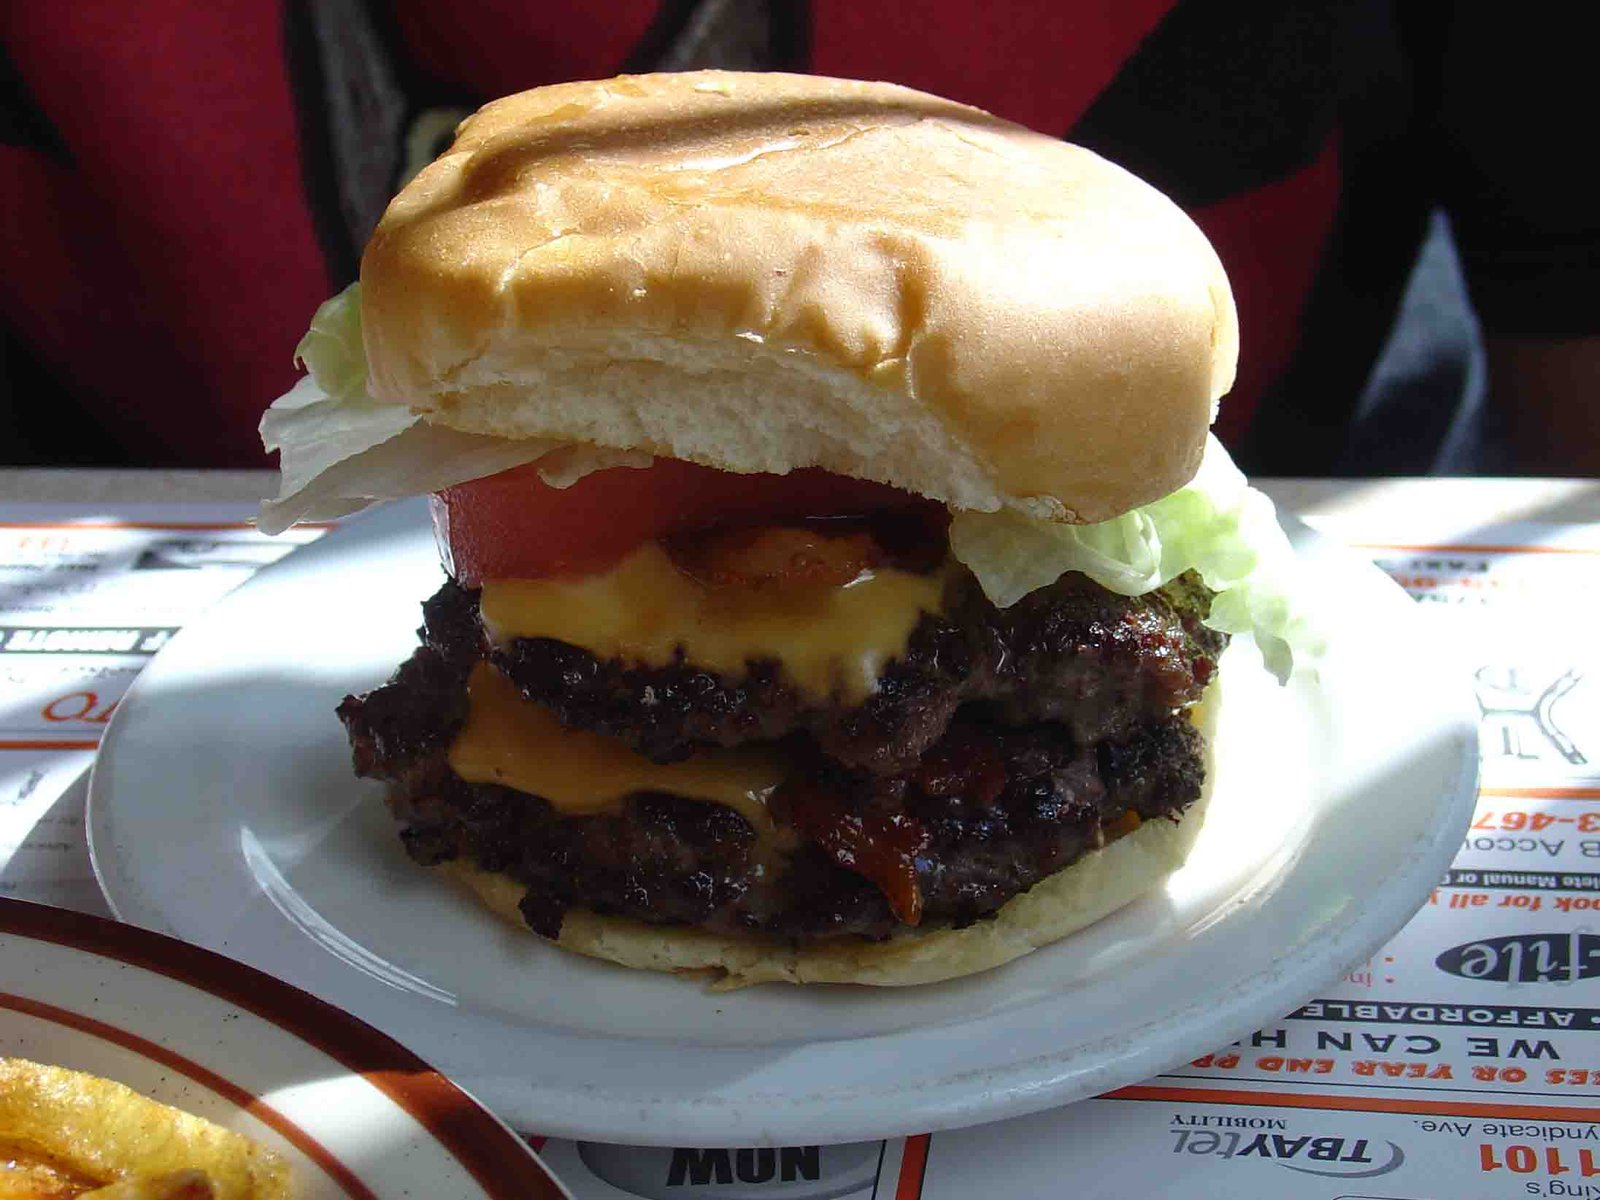 Now That's A Tasty Burger